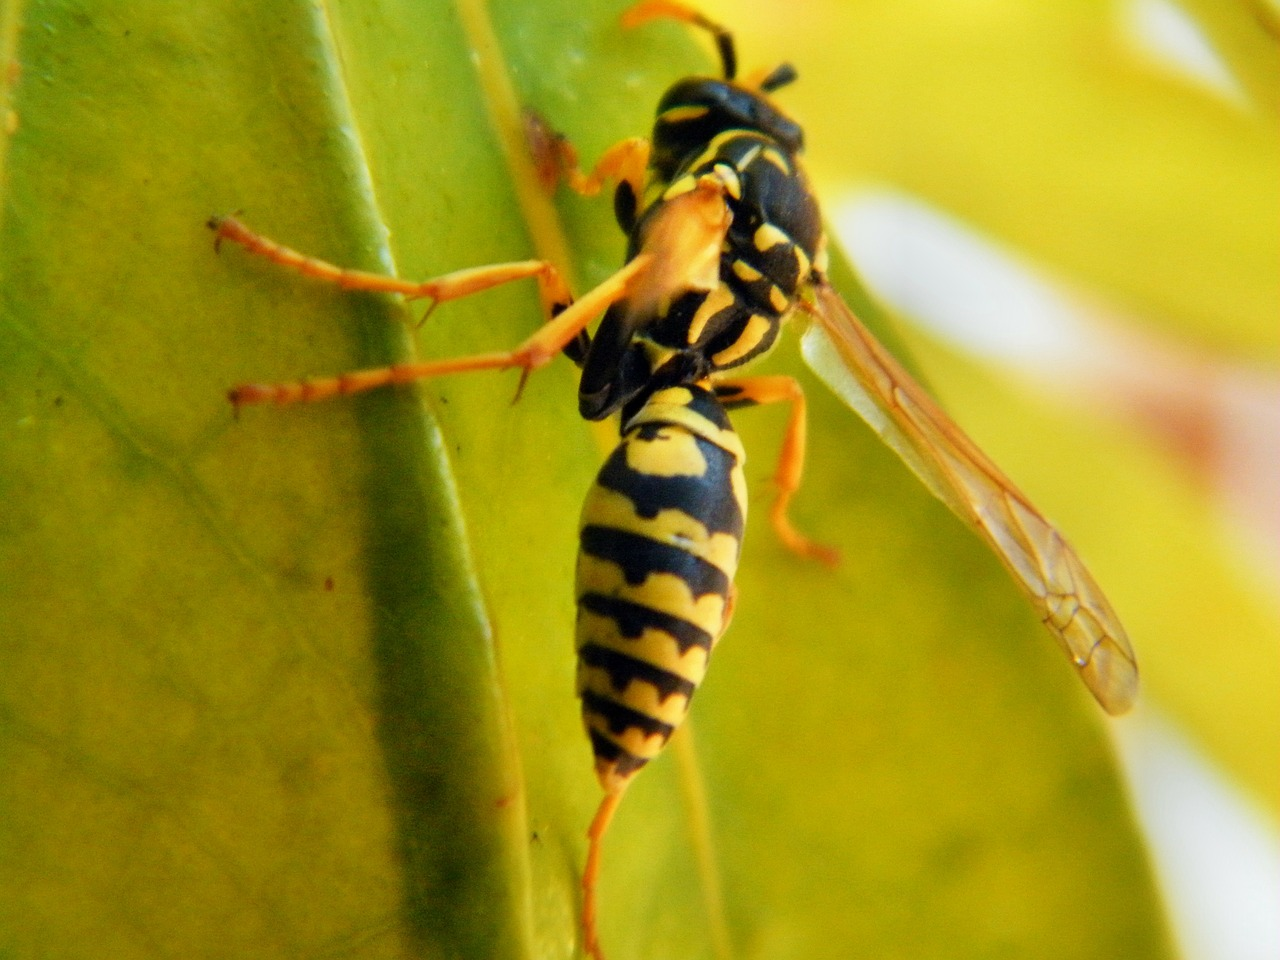 Brazilian wasp venom found to kill Cancer cells without harming healthy cells